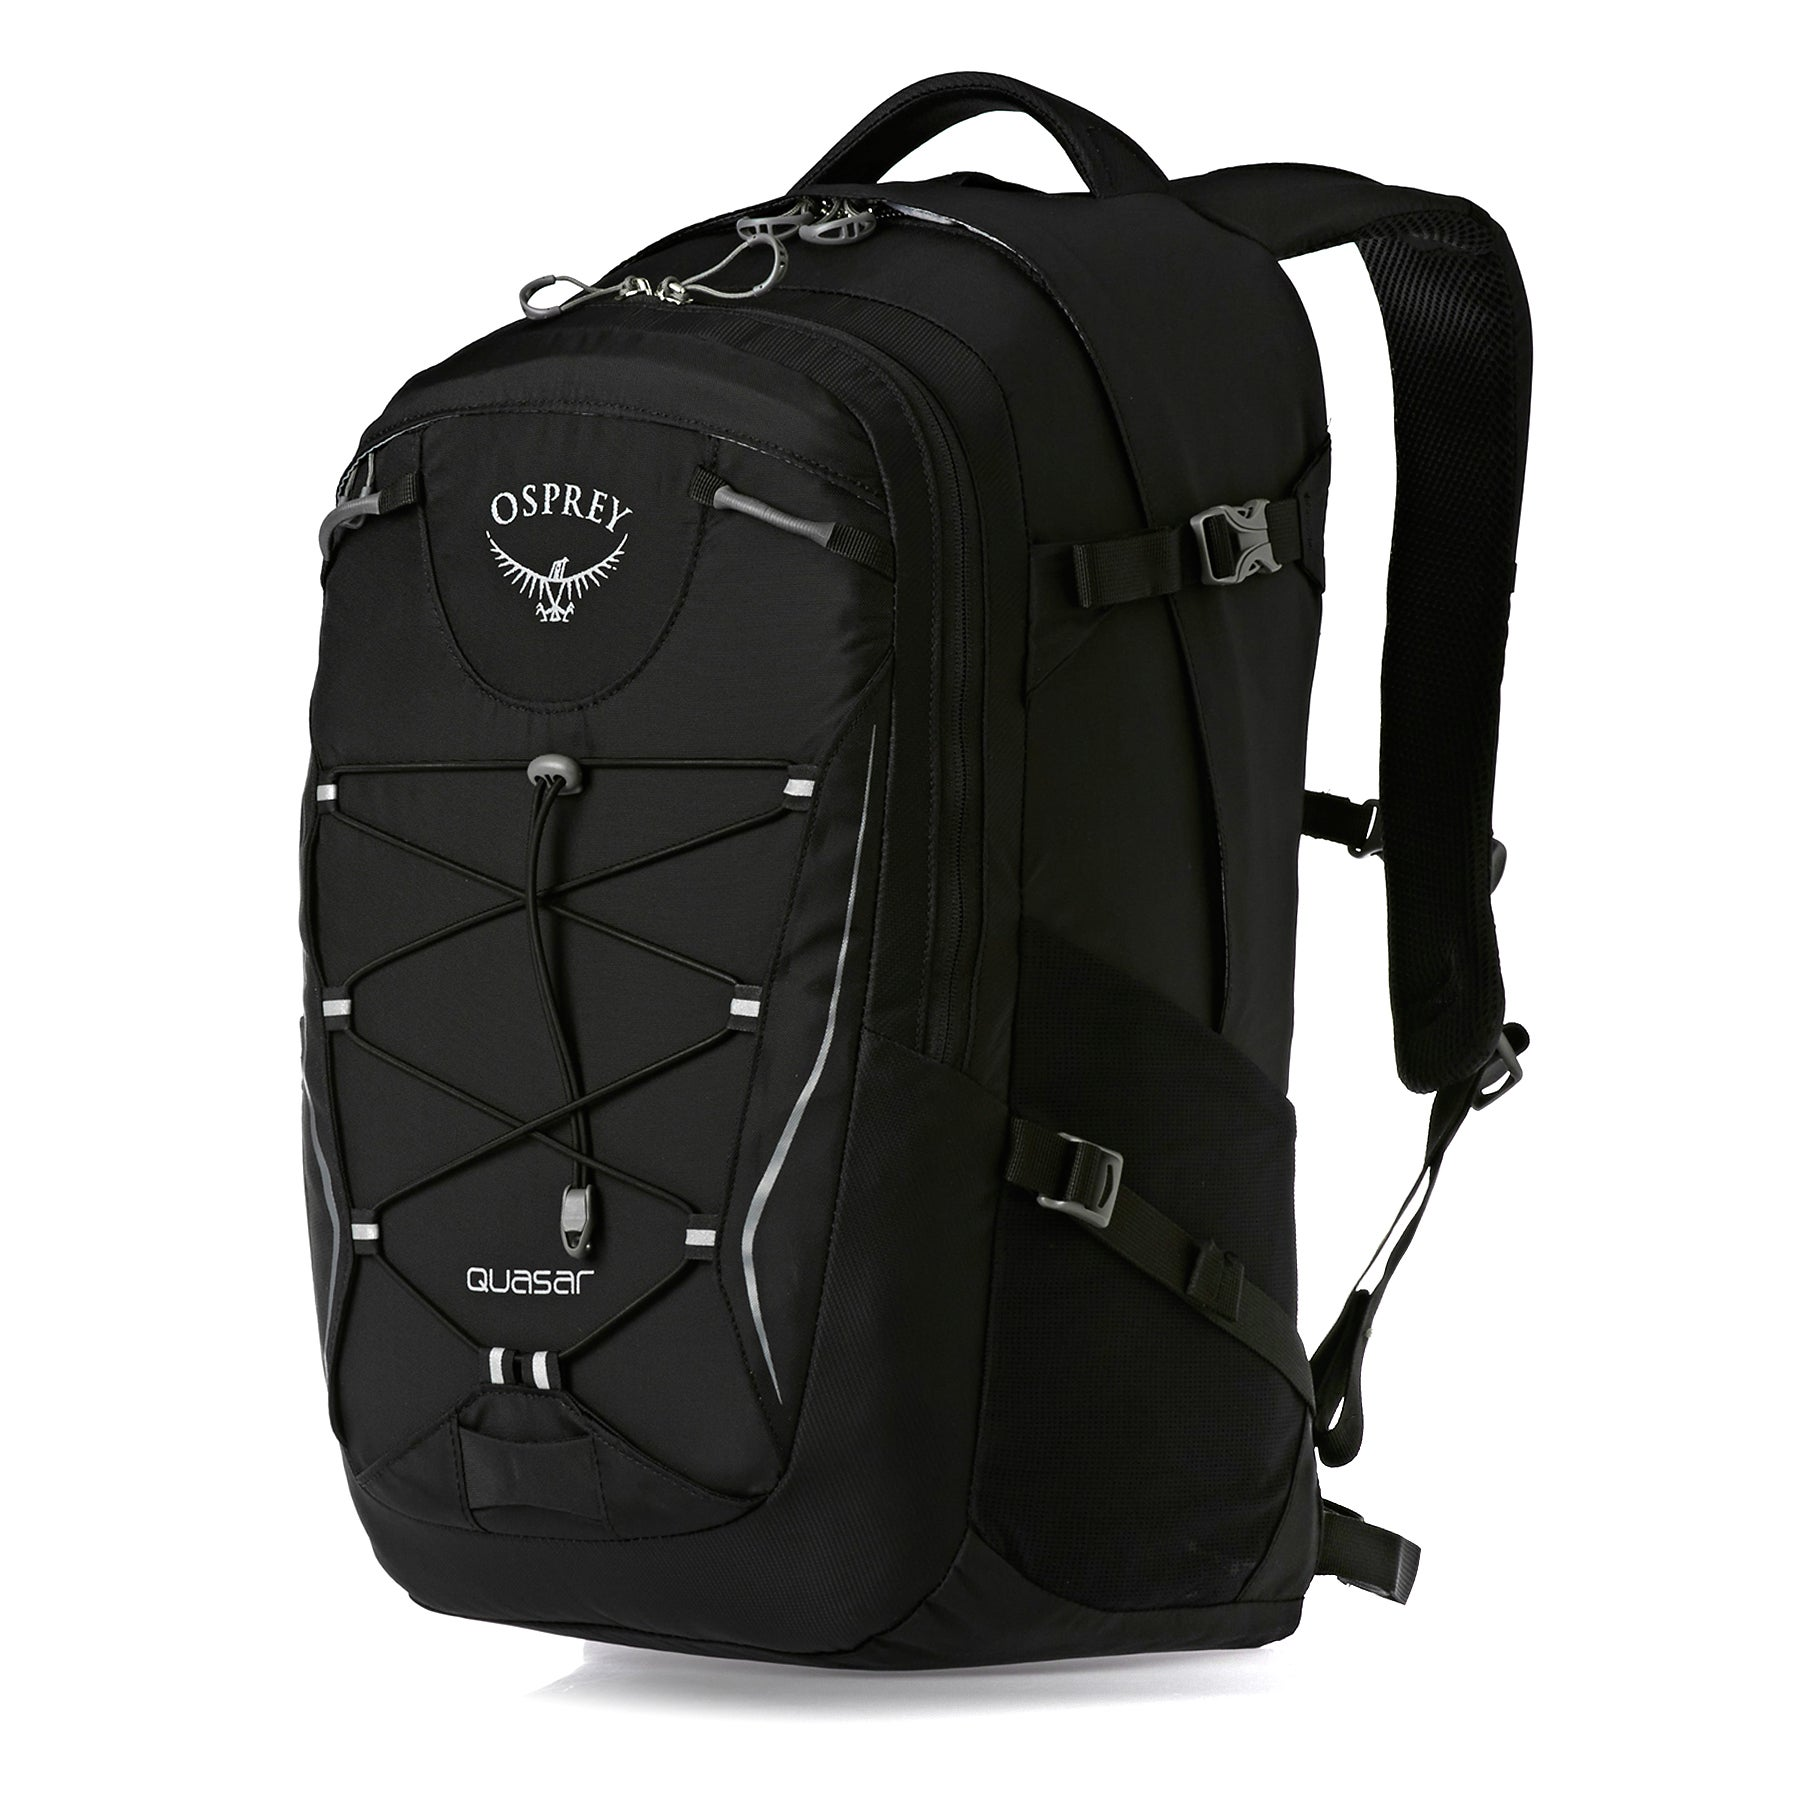 Osprey Quasar 28 Laptop Backpack - Black